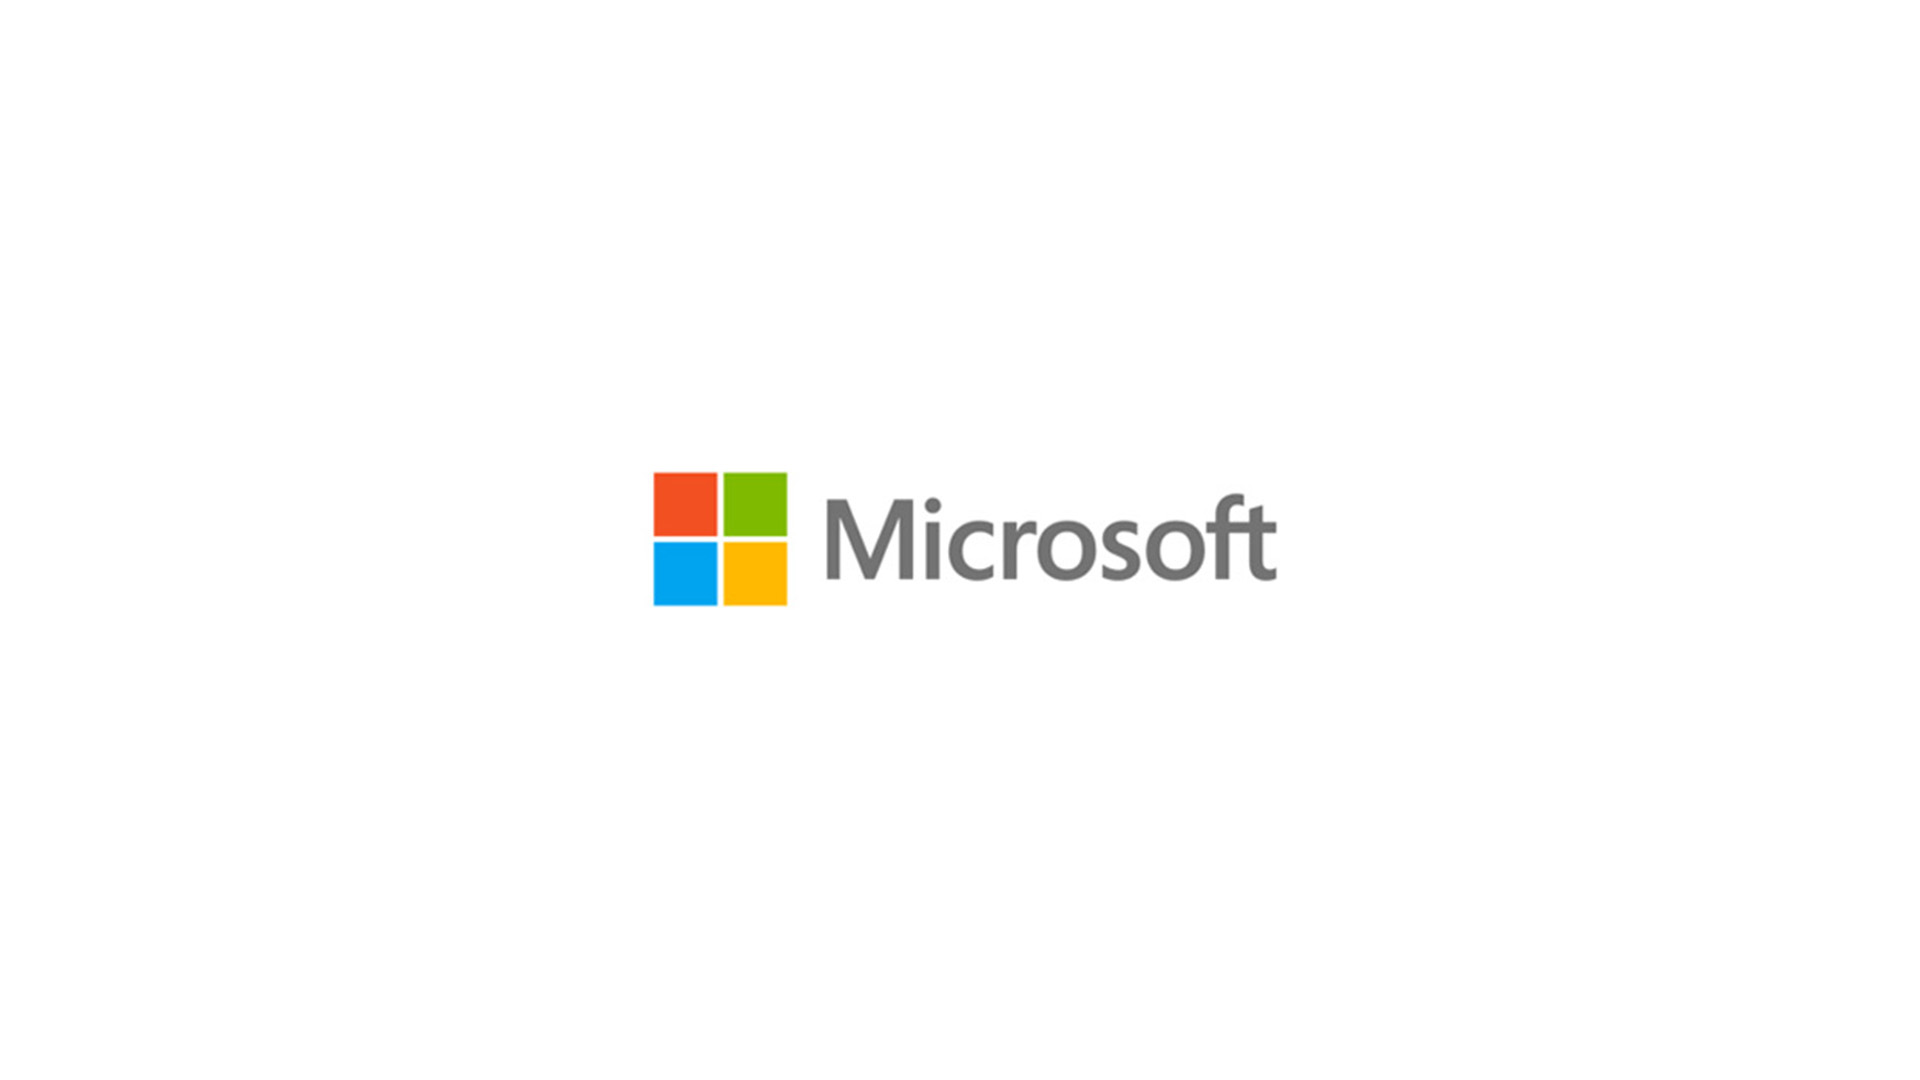 Why Is Microsoft Called Microsoft By The Way Tech